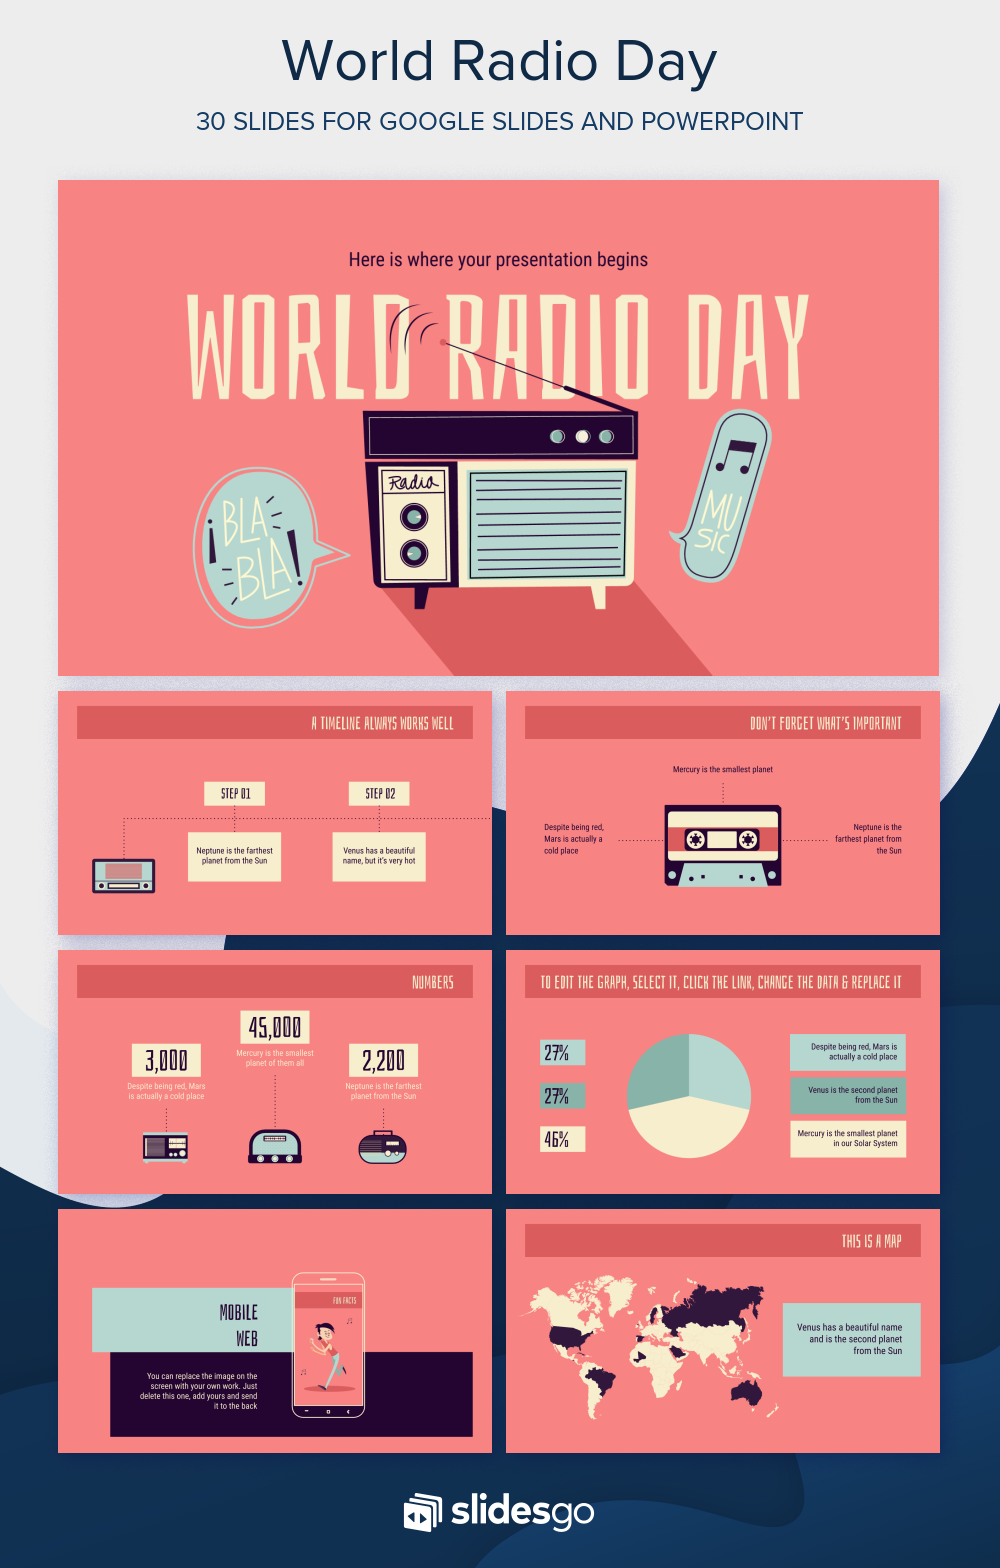 World Radio Day Presentation Free Google Slides Theme And Powerpoint Template In 2020 With Images